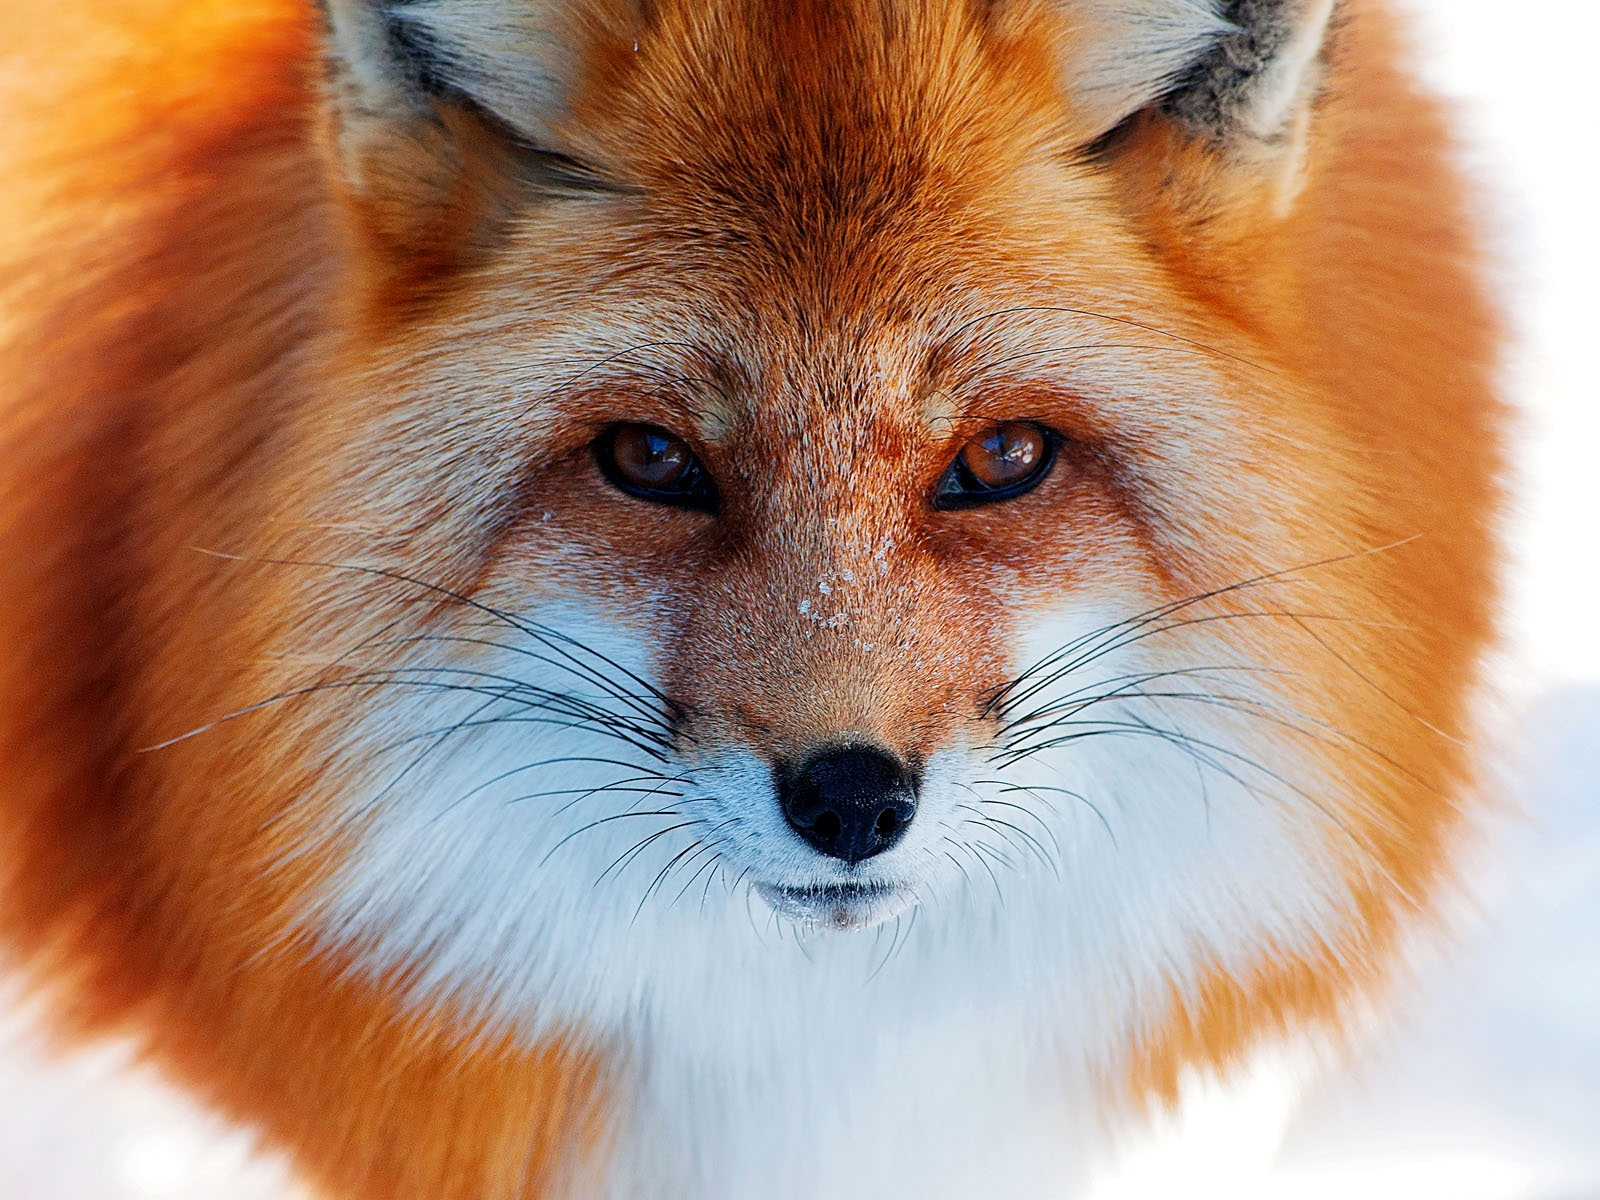 Fox close-up wallpaper 1600x1200.